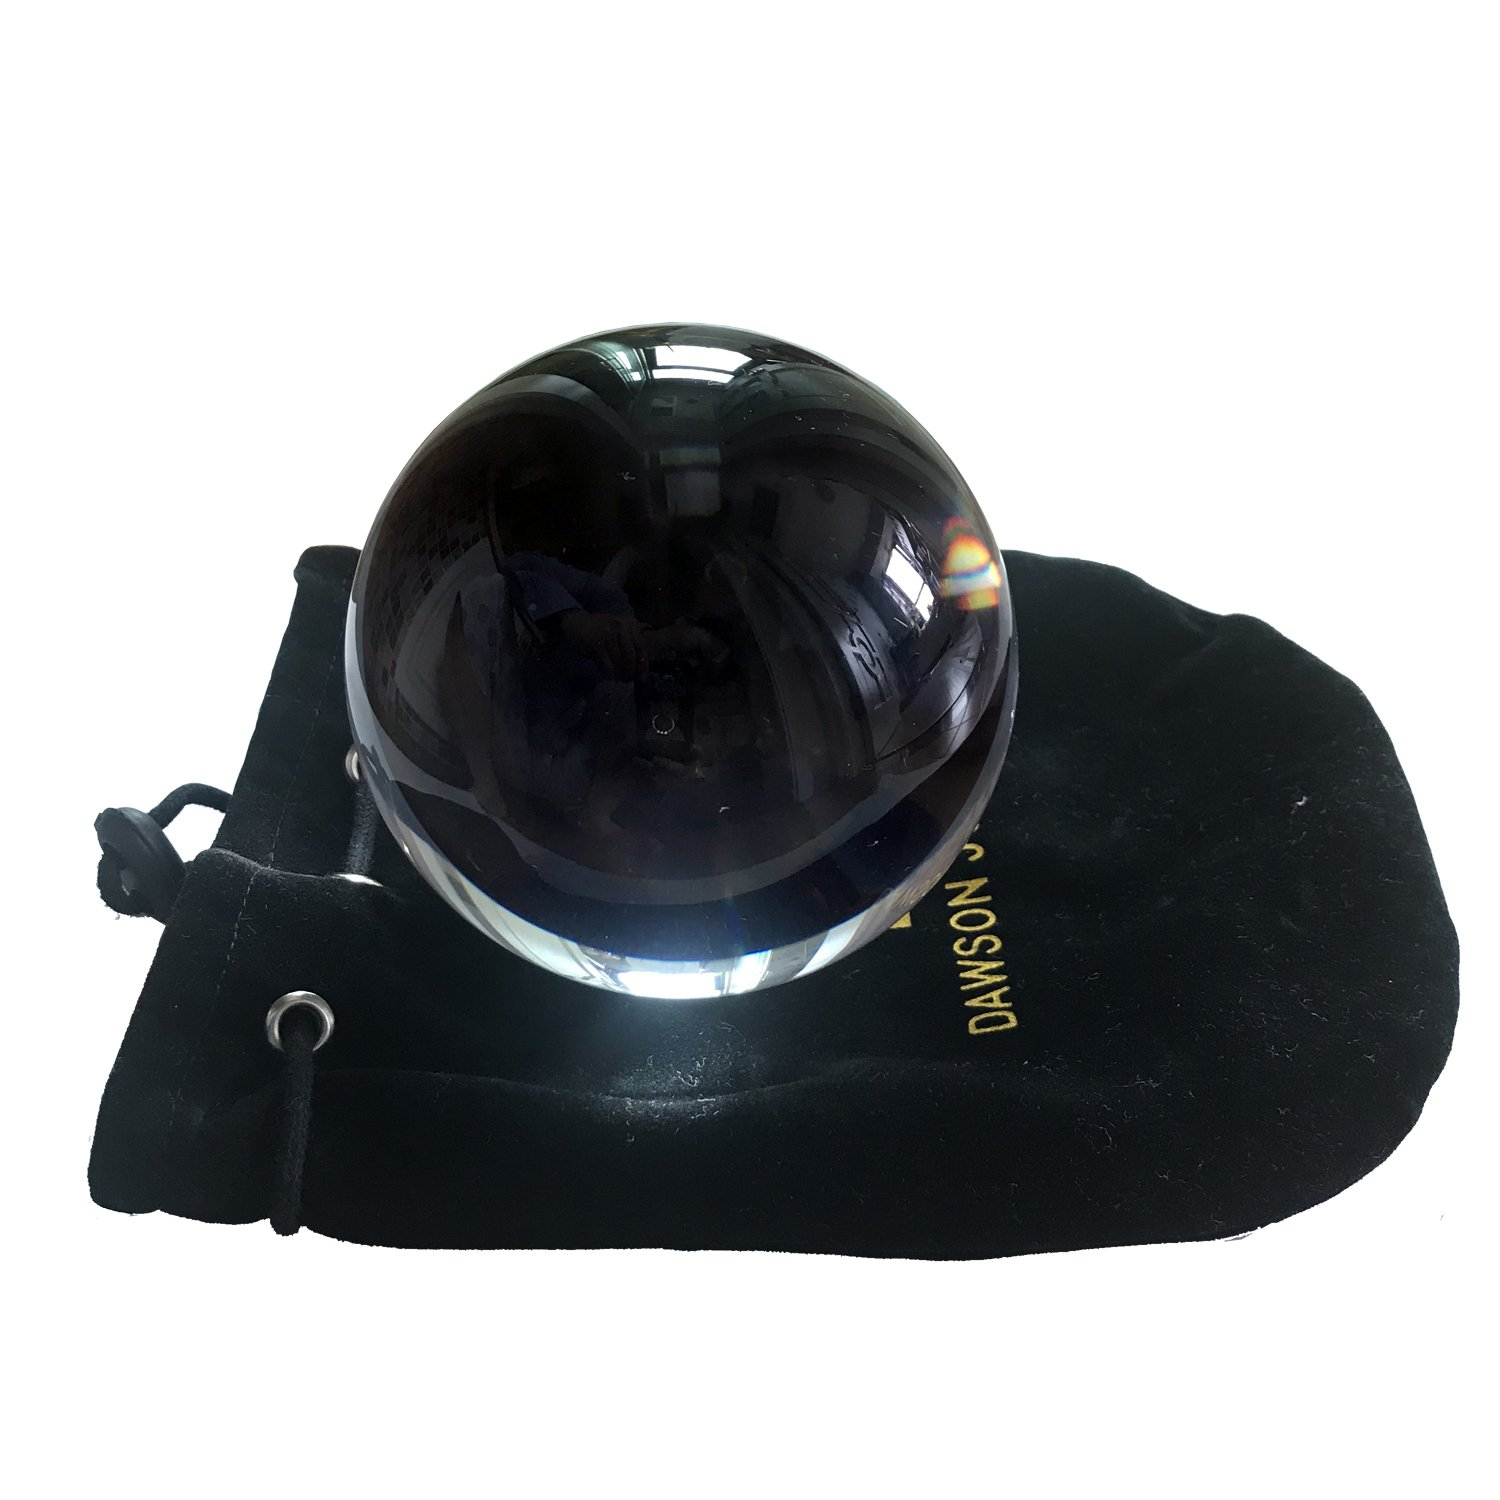 DSJUGGLING Clear Acrylic Contact Juggling Ball 4 100mm Packed with Protective Bag